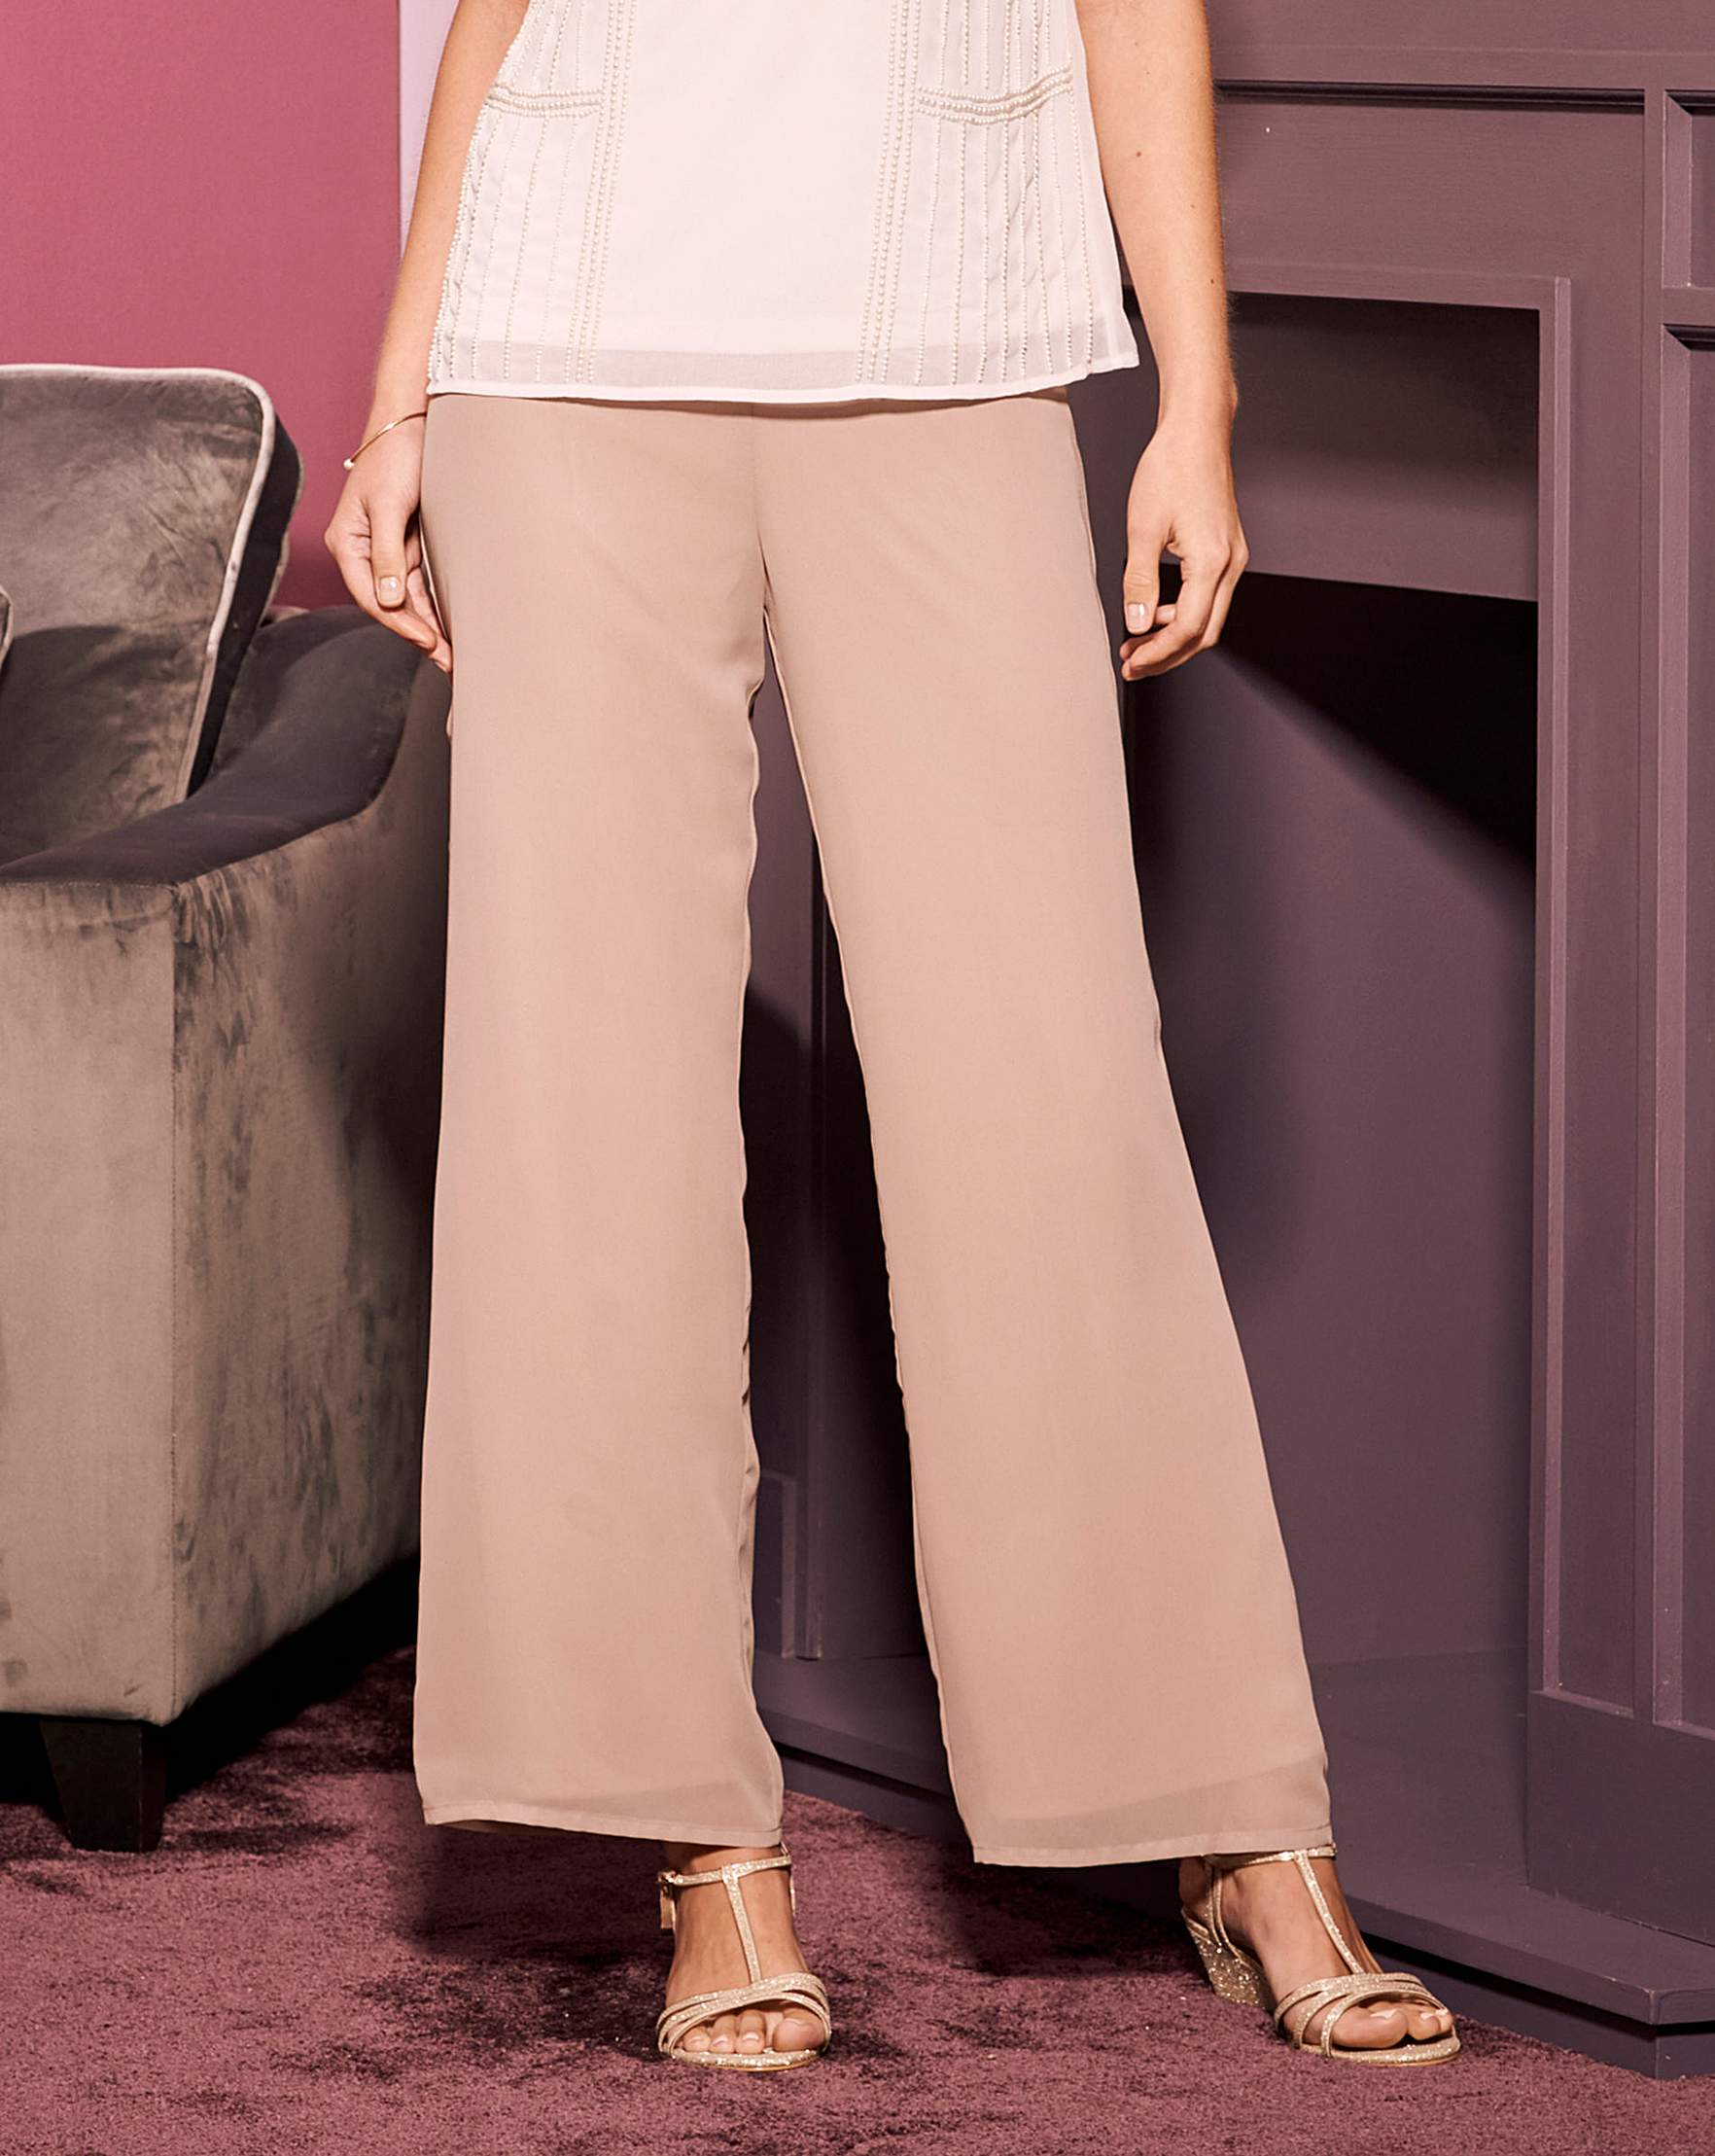 Nightingales Chiffon Trouser J D Williams Jeans Pant Woman 7 9 Mocca